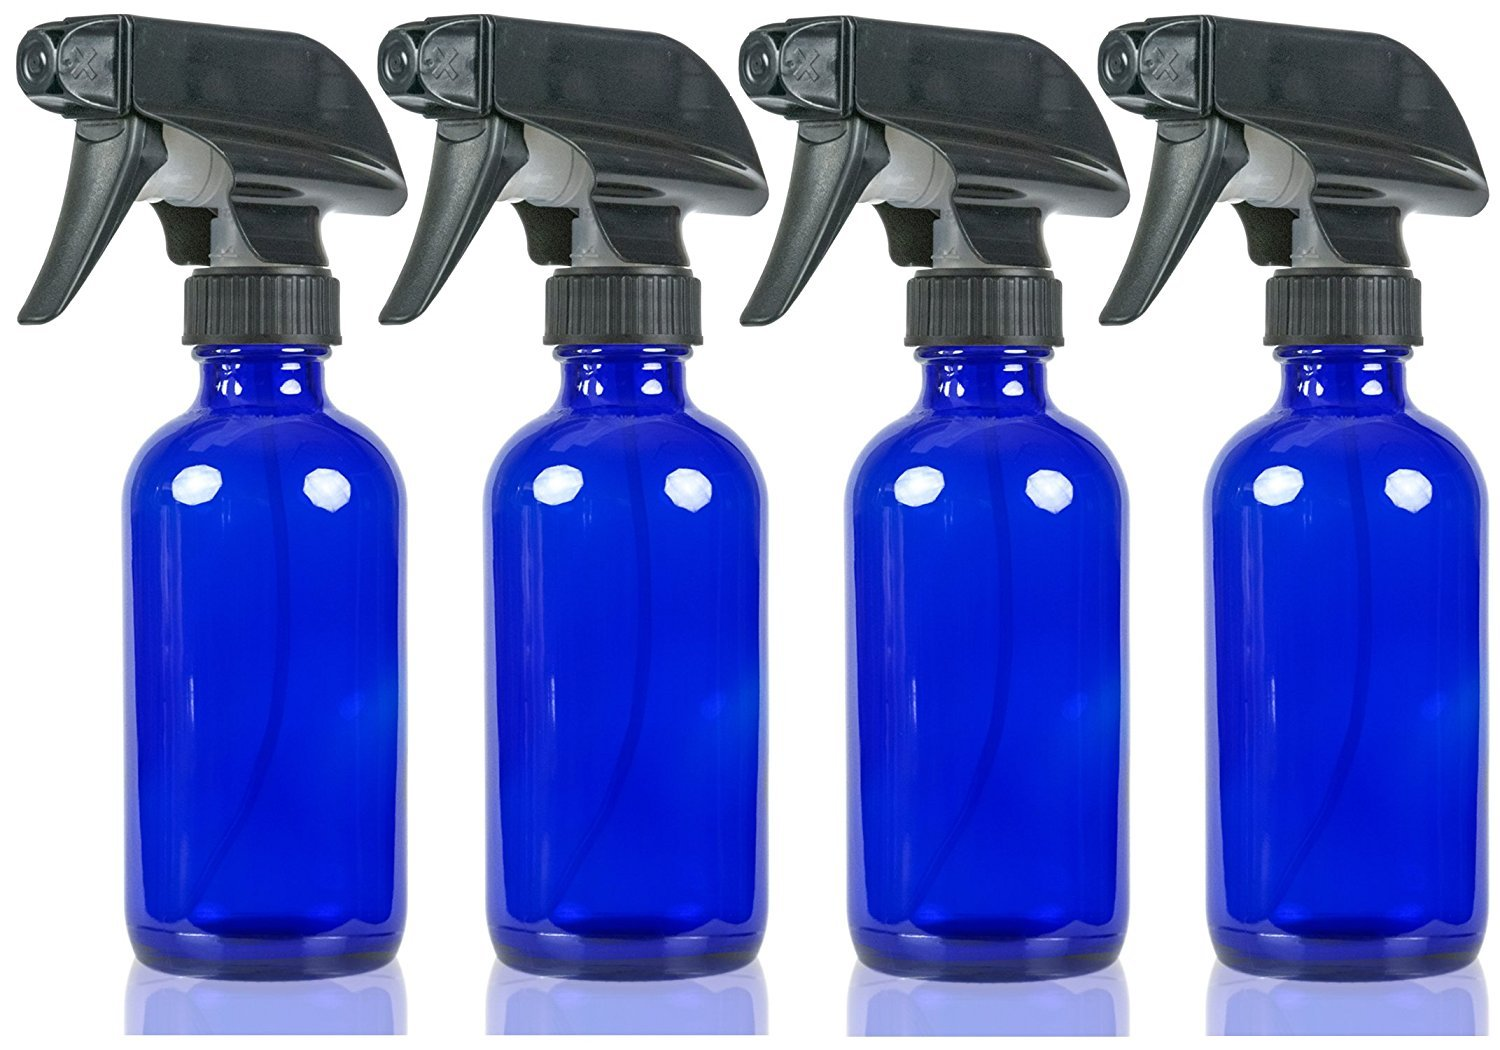 Large 8 oz Cobalt Blue Glass Spray Bottles with Chalkboard Labels (4 Pack), BPA Free for Essential Oils, Aromatherapy and Natural Cleaning Products. Heavy Duty Fine Mist Spray and Stream Trigger Sprayers Grace